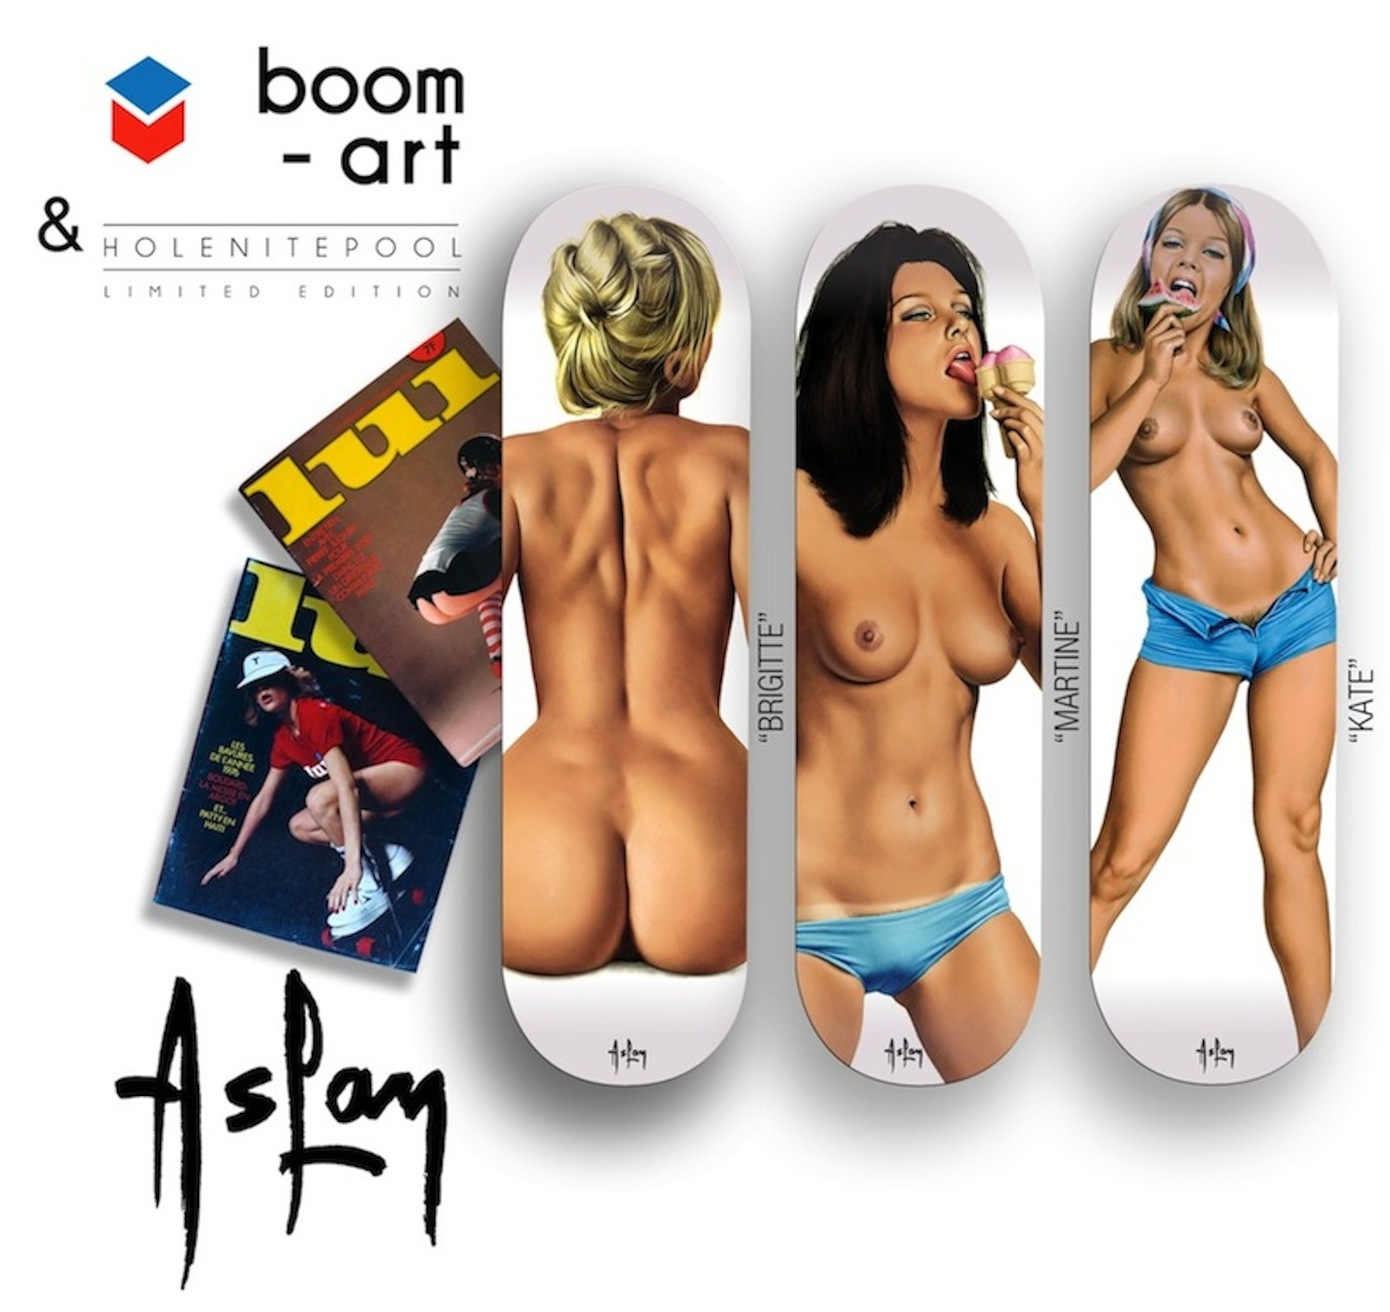 Aslan's Pin-Up Skateboards: boomart_4_20120309_1574599540.jpg